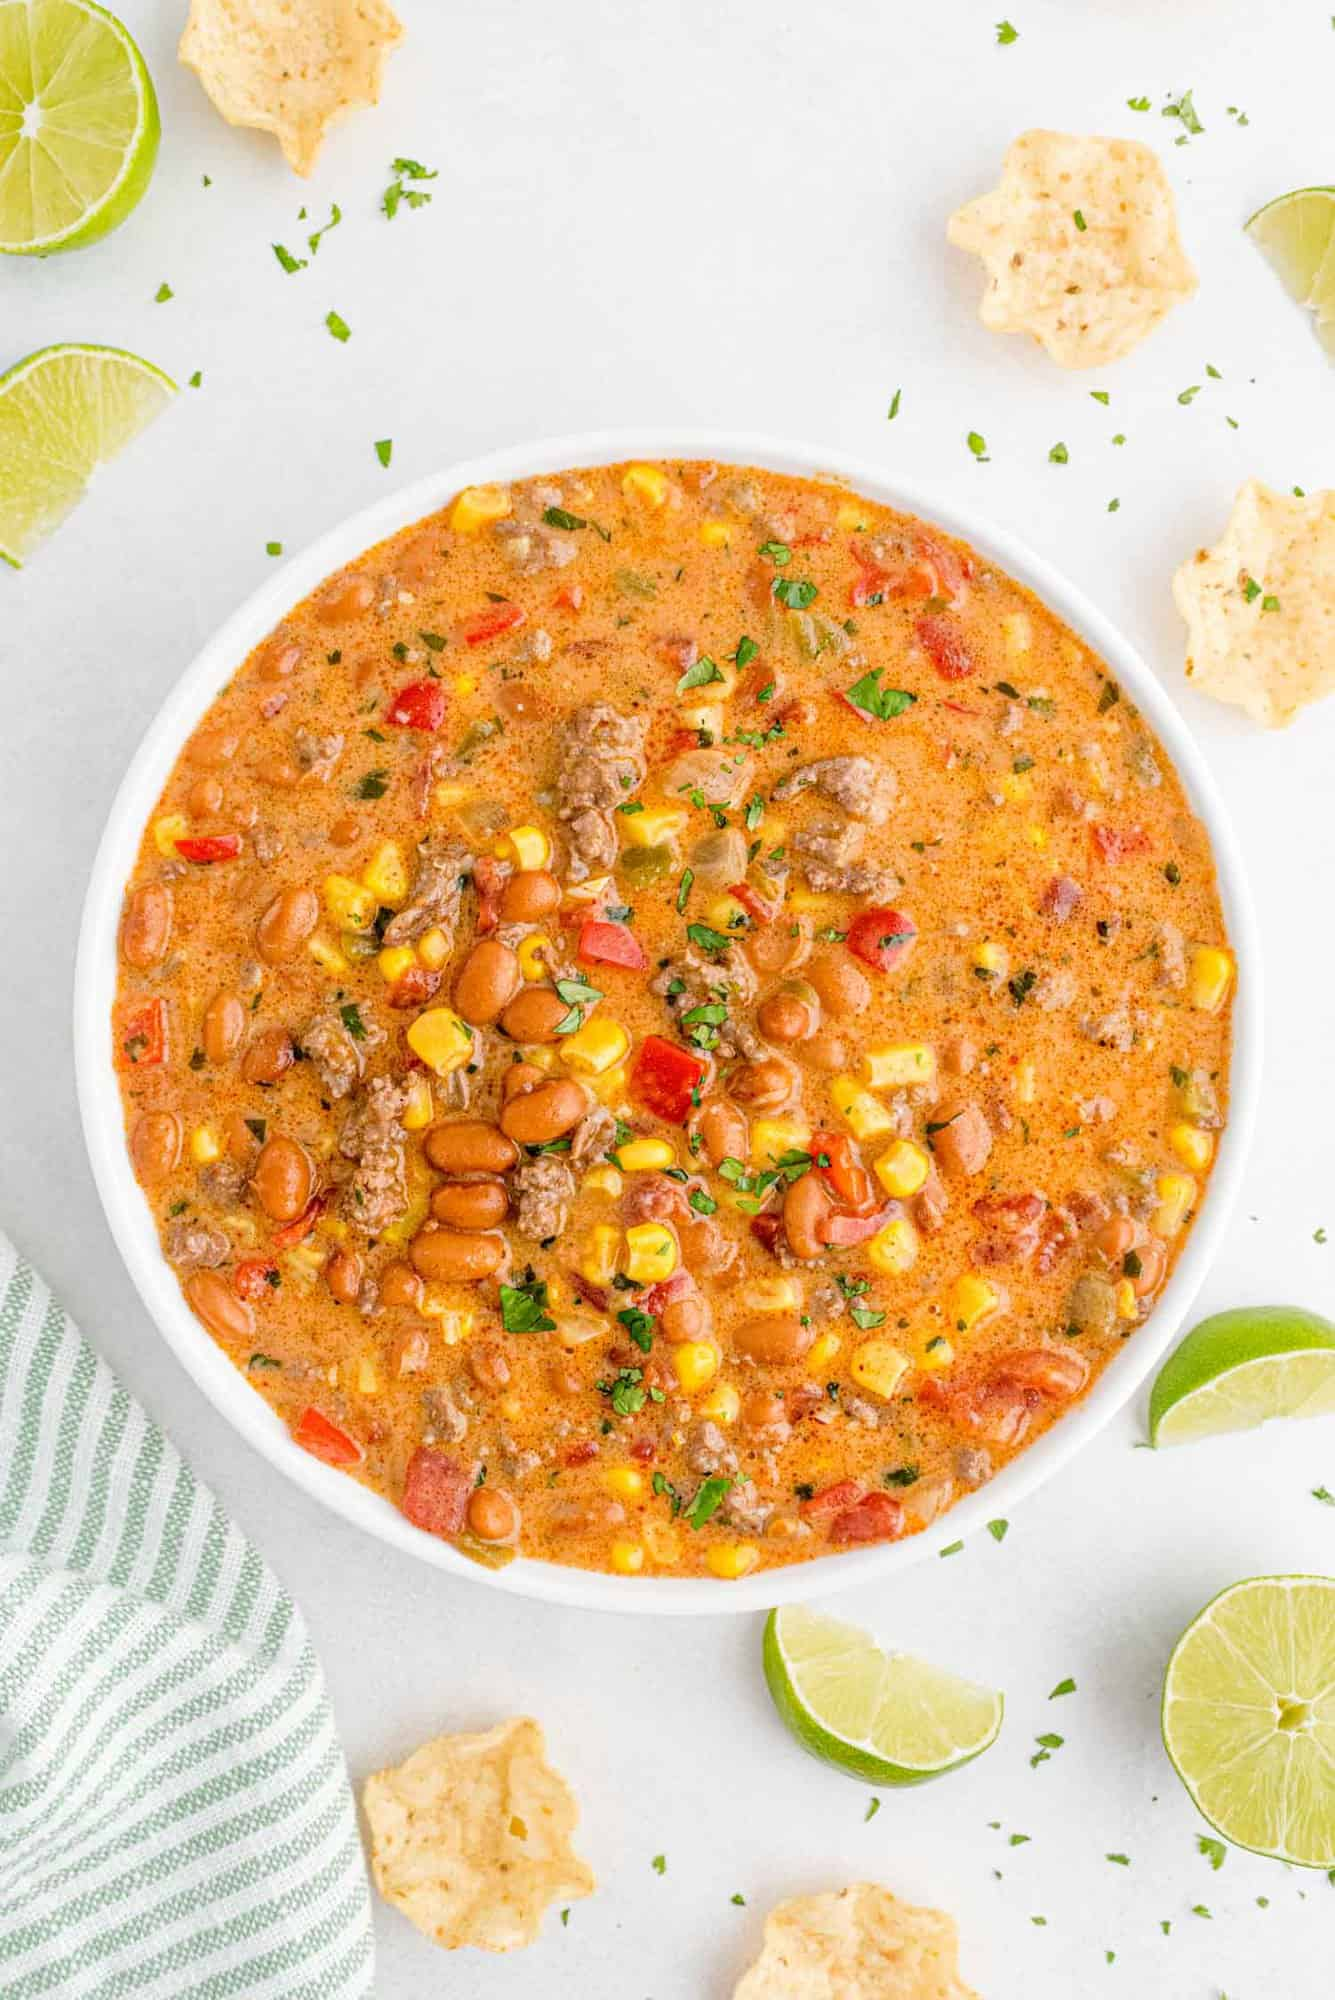 Overhead view of a large bowl of creamy chili topped with cilantro.